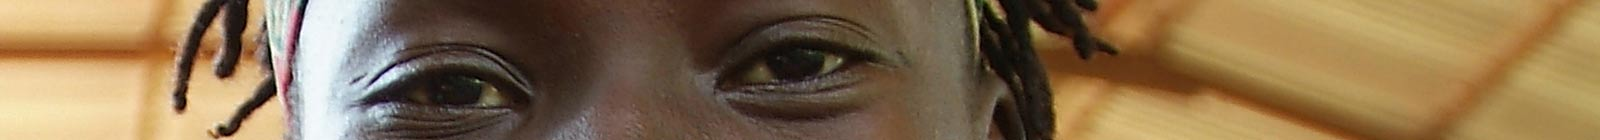 Eyes of Cloe, Conakry, Guinea.